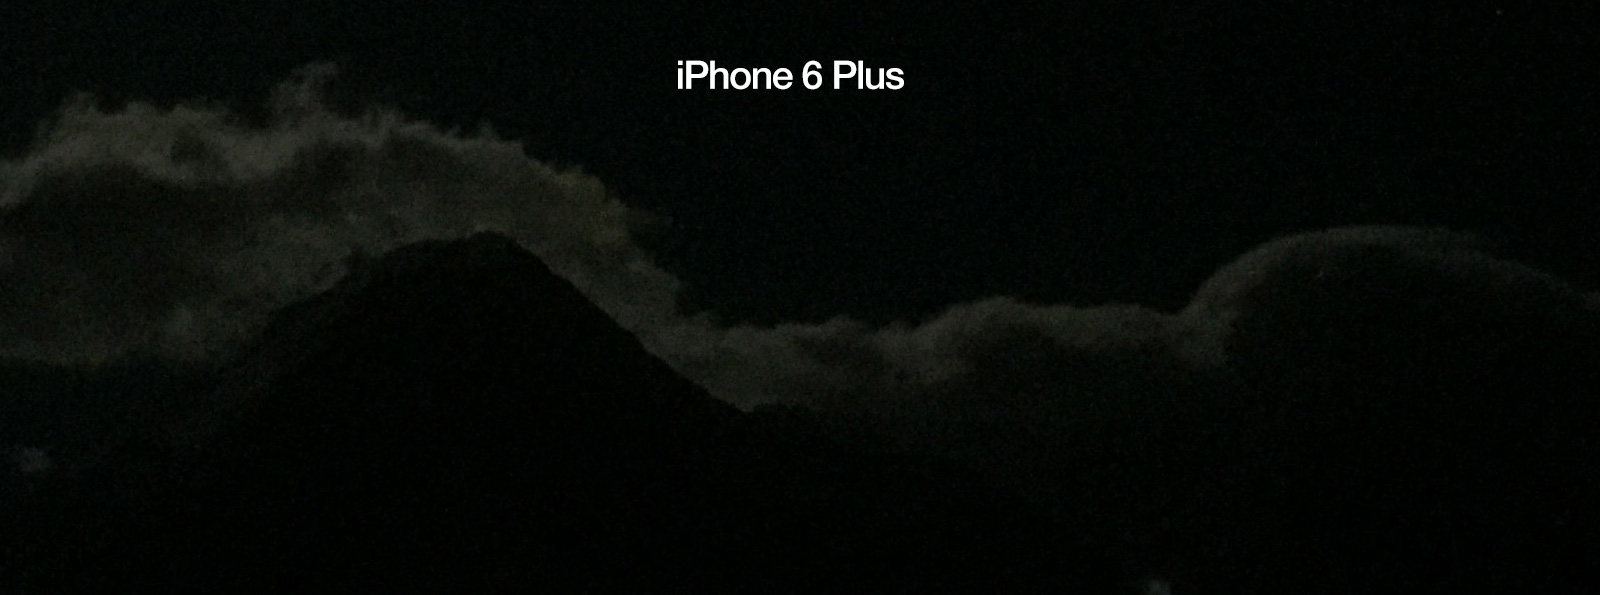 iPhone6scamerareview_6_extreme_ll.jpg